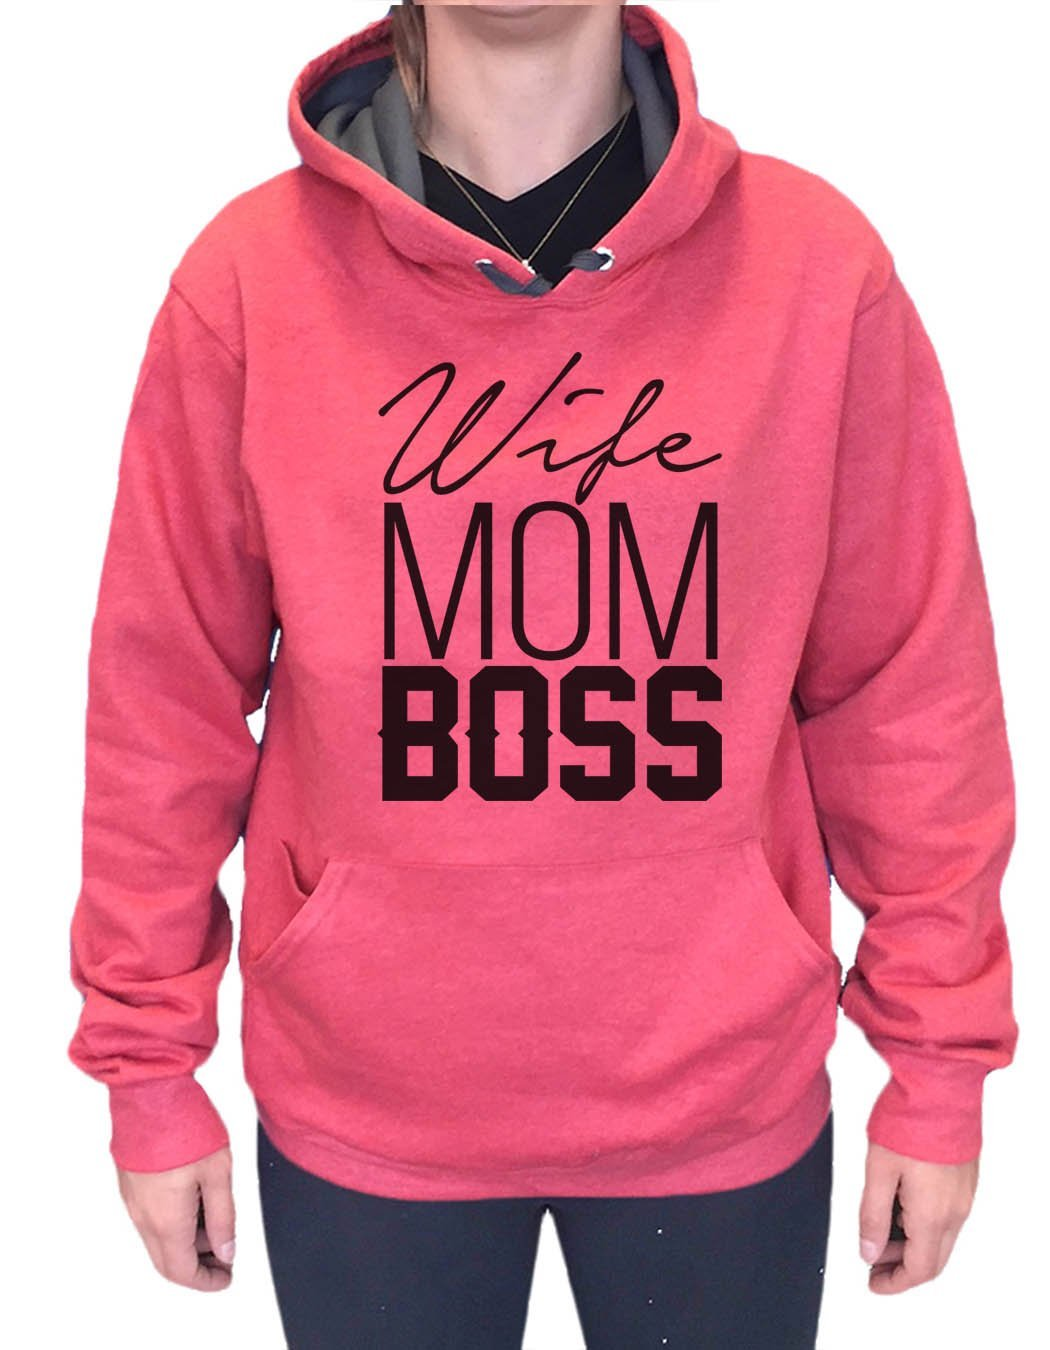 UNISEX HOODIE - Wife Mom Boss - FUNNY MENS AND WOMENS HOODED SWEATSHIRTS - 2156a Funny Shirt Small / Cranberry Red